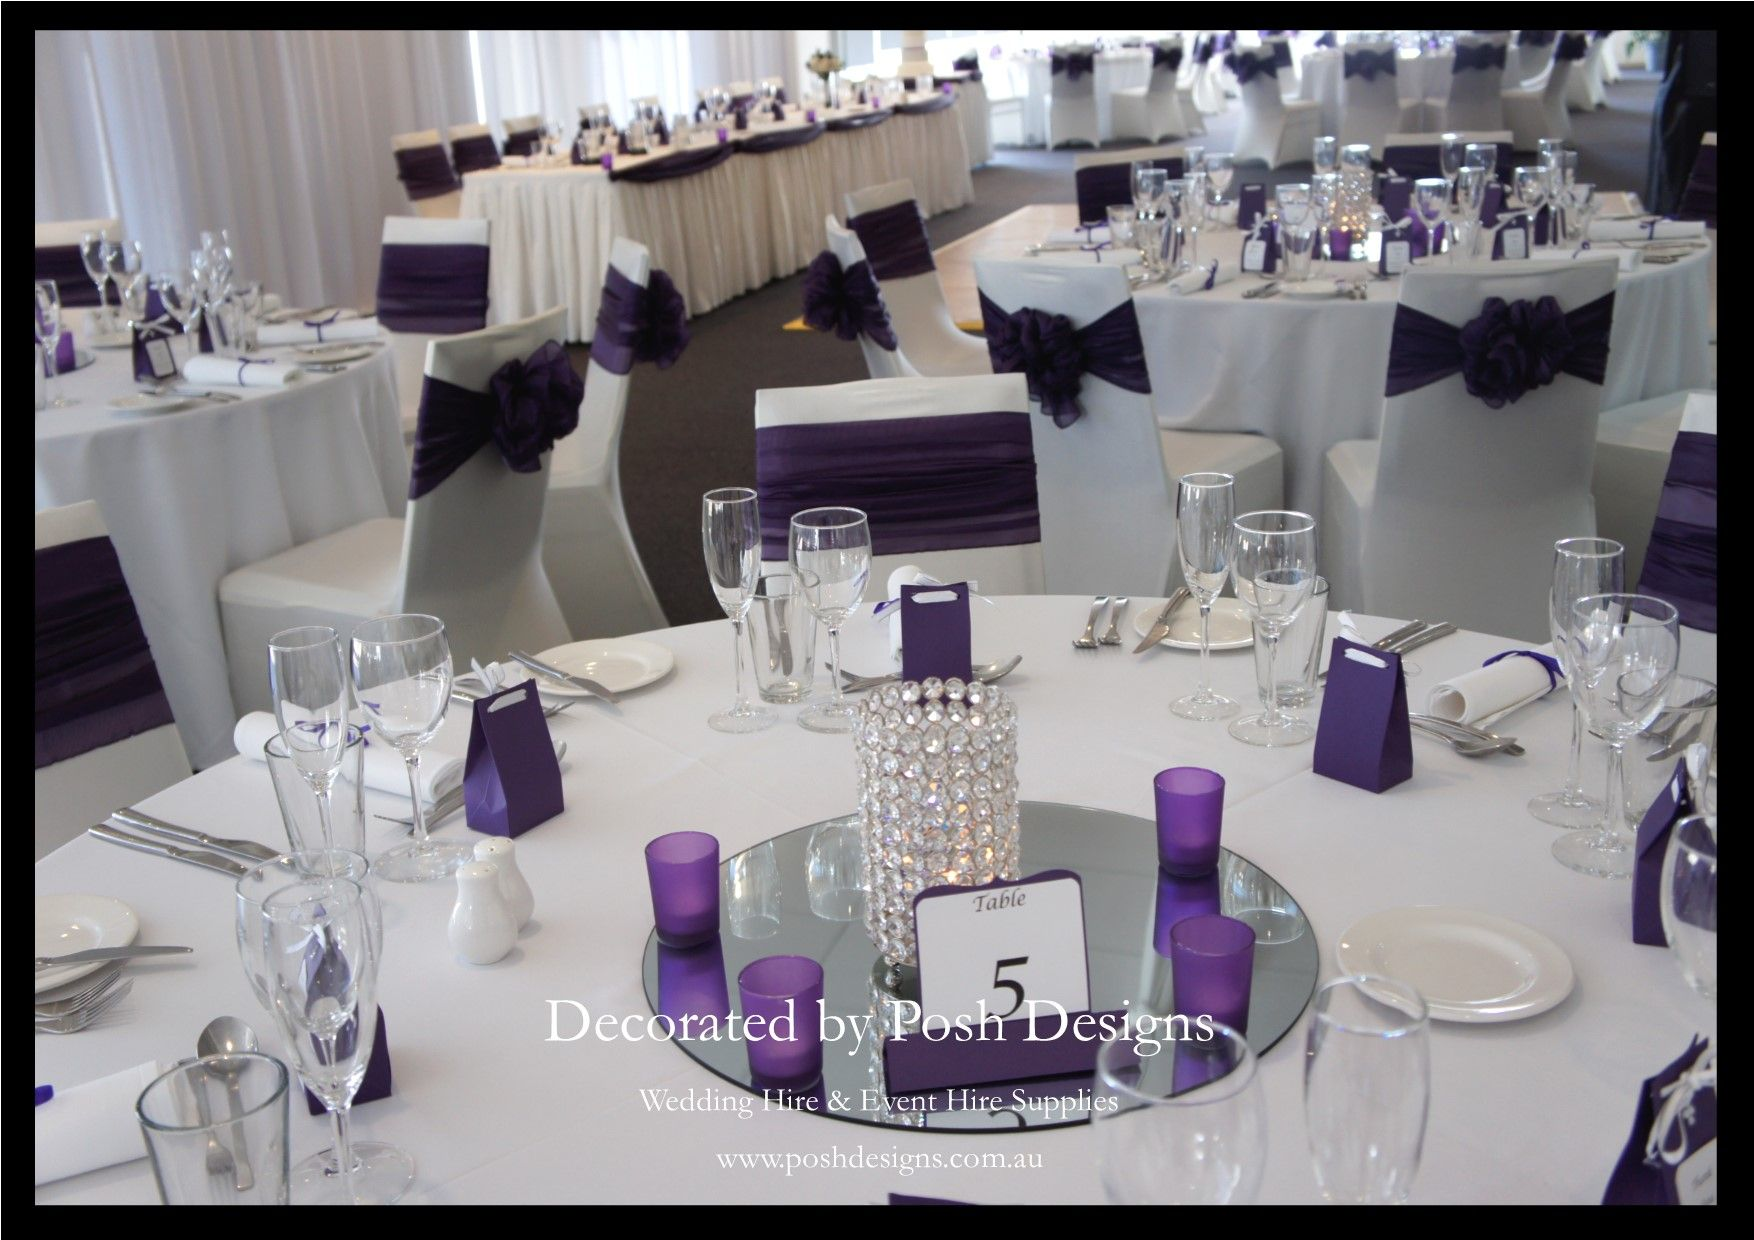 Purple and white themed wedding decorations for hire | Wedding ...